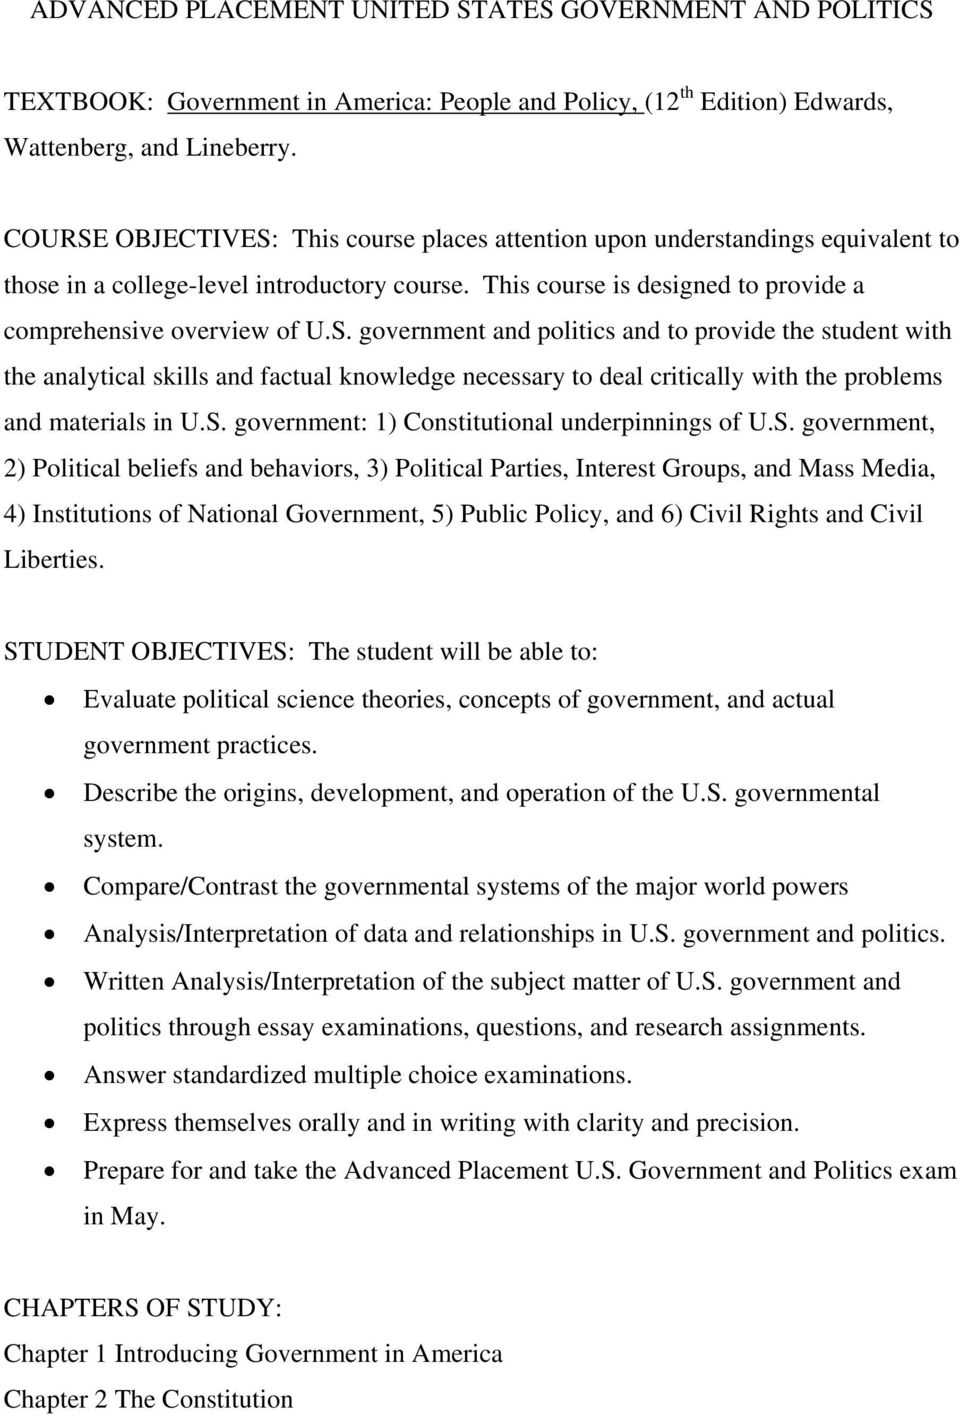 S. government: 1) Constitutional underpinnings of U.S. government, 2) Political beliefs and behaviors, 3) Political Parties, Interest Groups, and Mass Media, 4) Institutions of National Government,